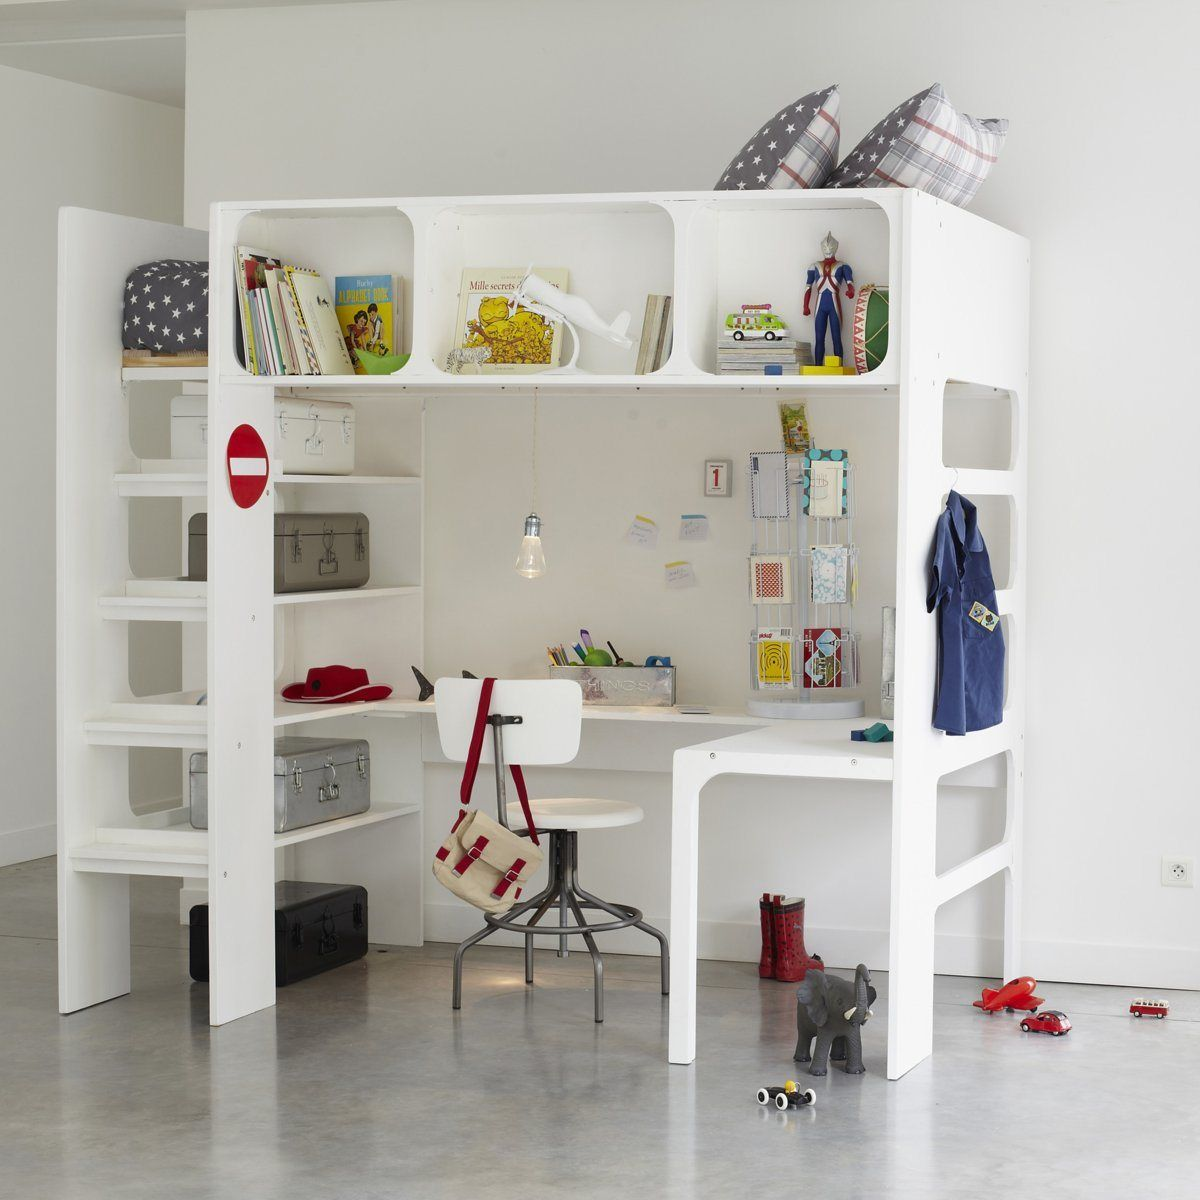 La redoute lit bureau et commode gain de place bcn amenagement int - Mezzanine gain de place ...